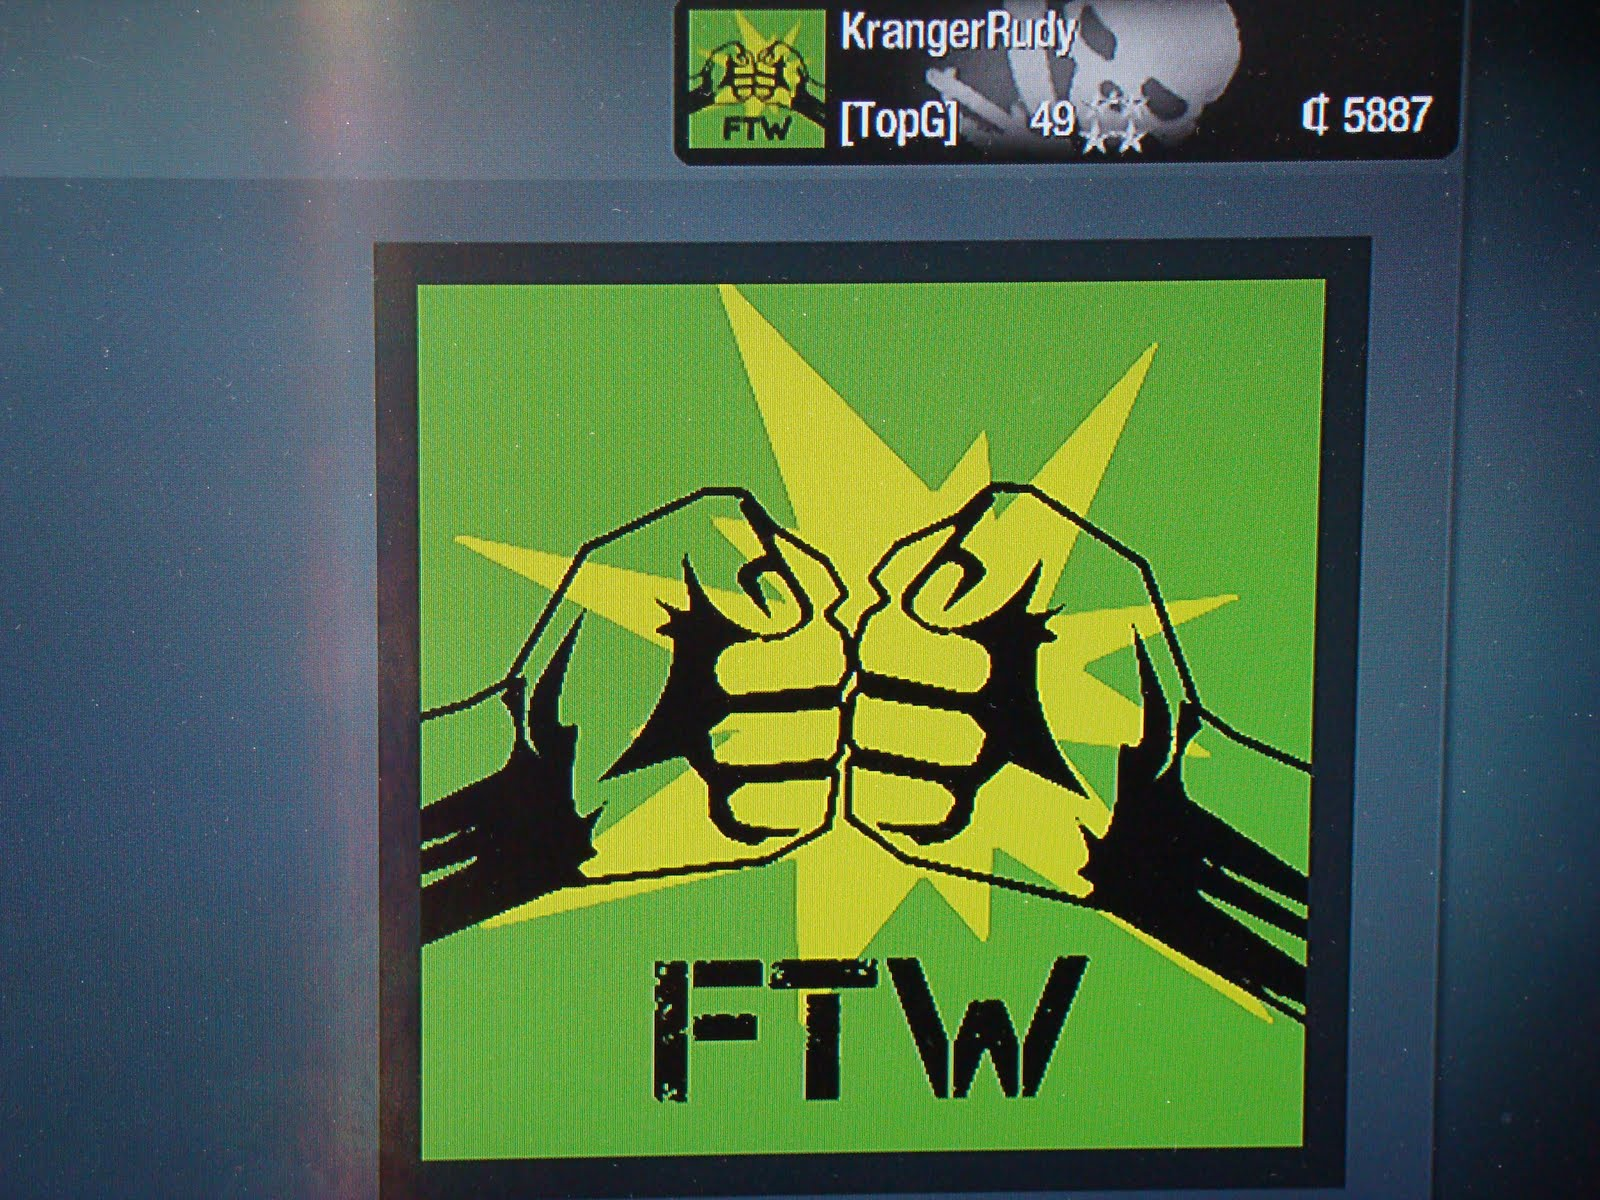 Black+Ops+Emblems+Funny+How+To